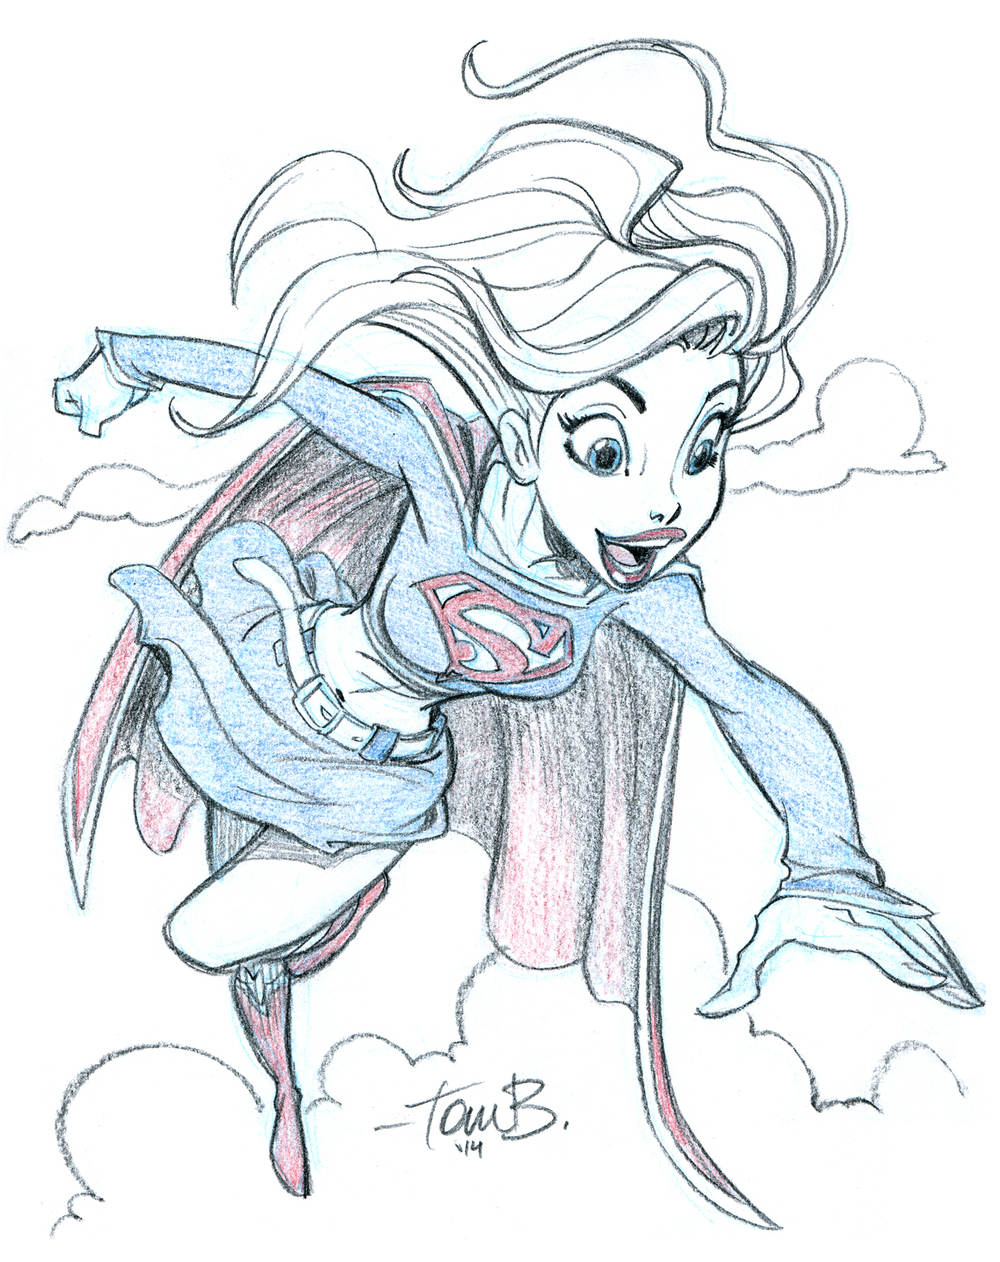 Supergirl_HappyFly_sketch_Bancroft.jpg